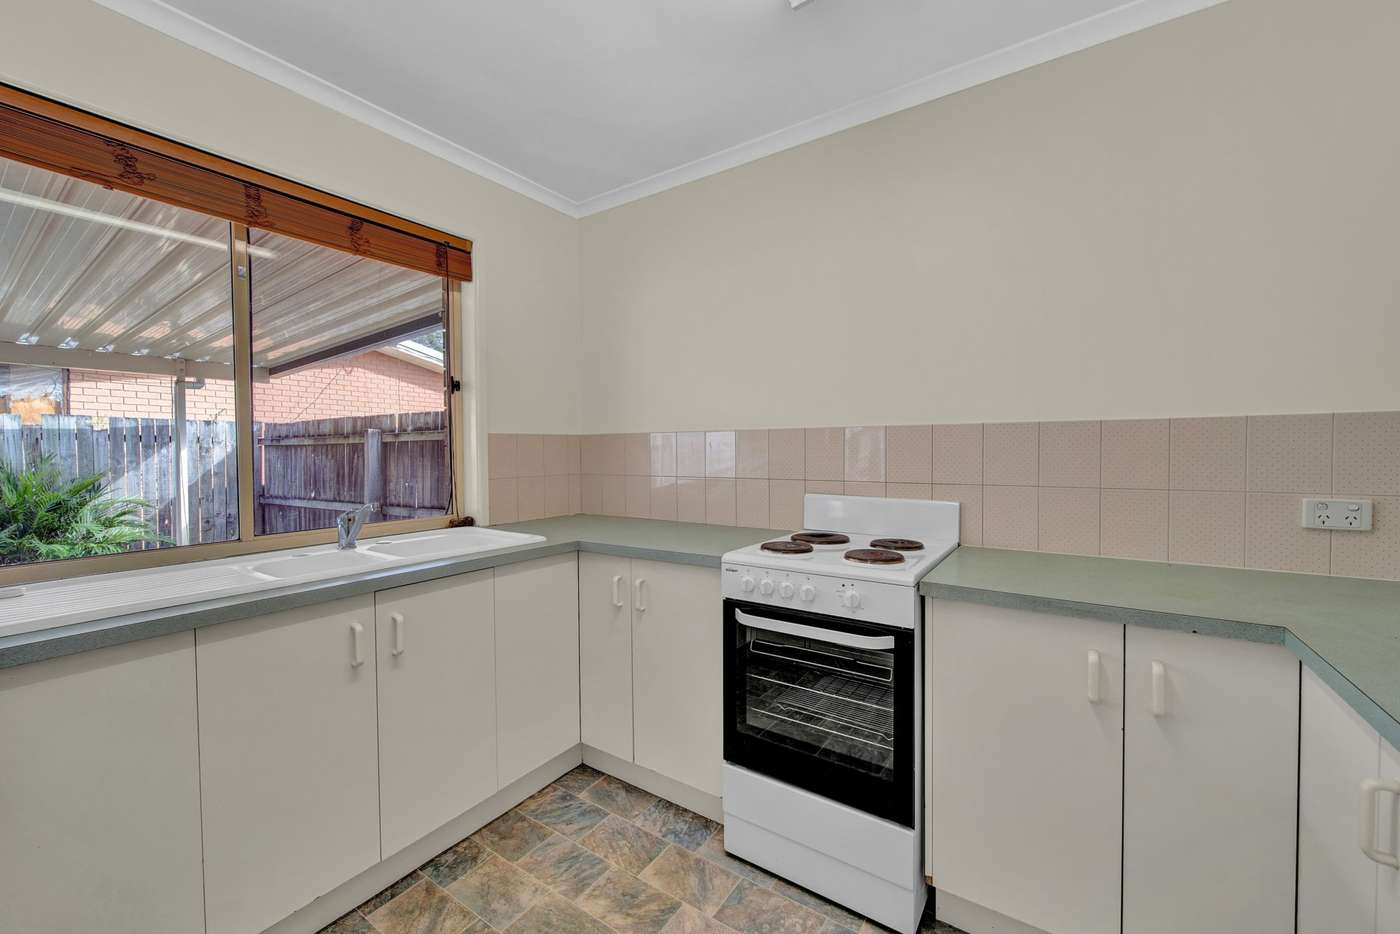 Sixth view of Homely house listing, 3 Carlton Close, Bethania QLD 4205